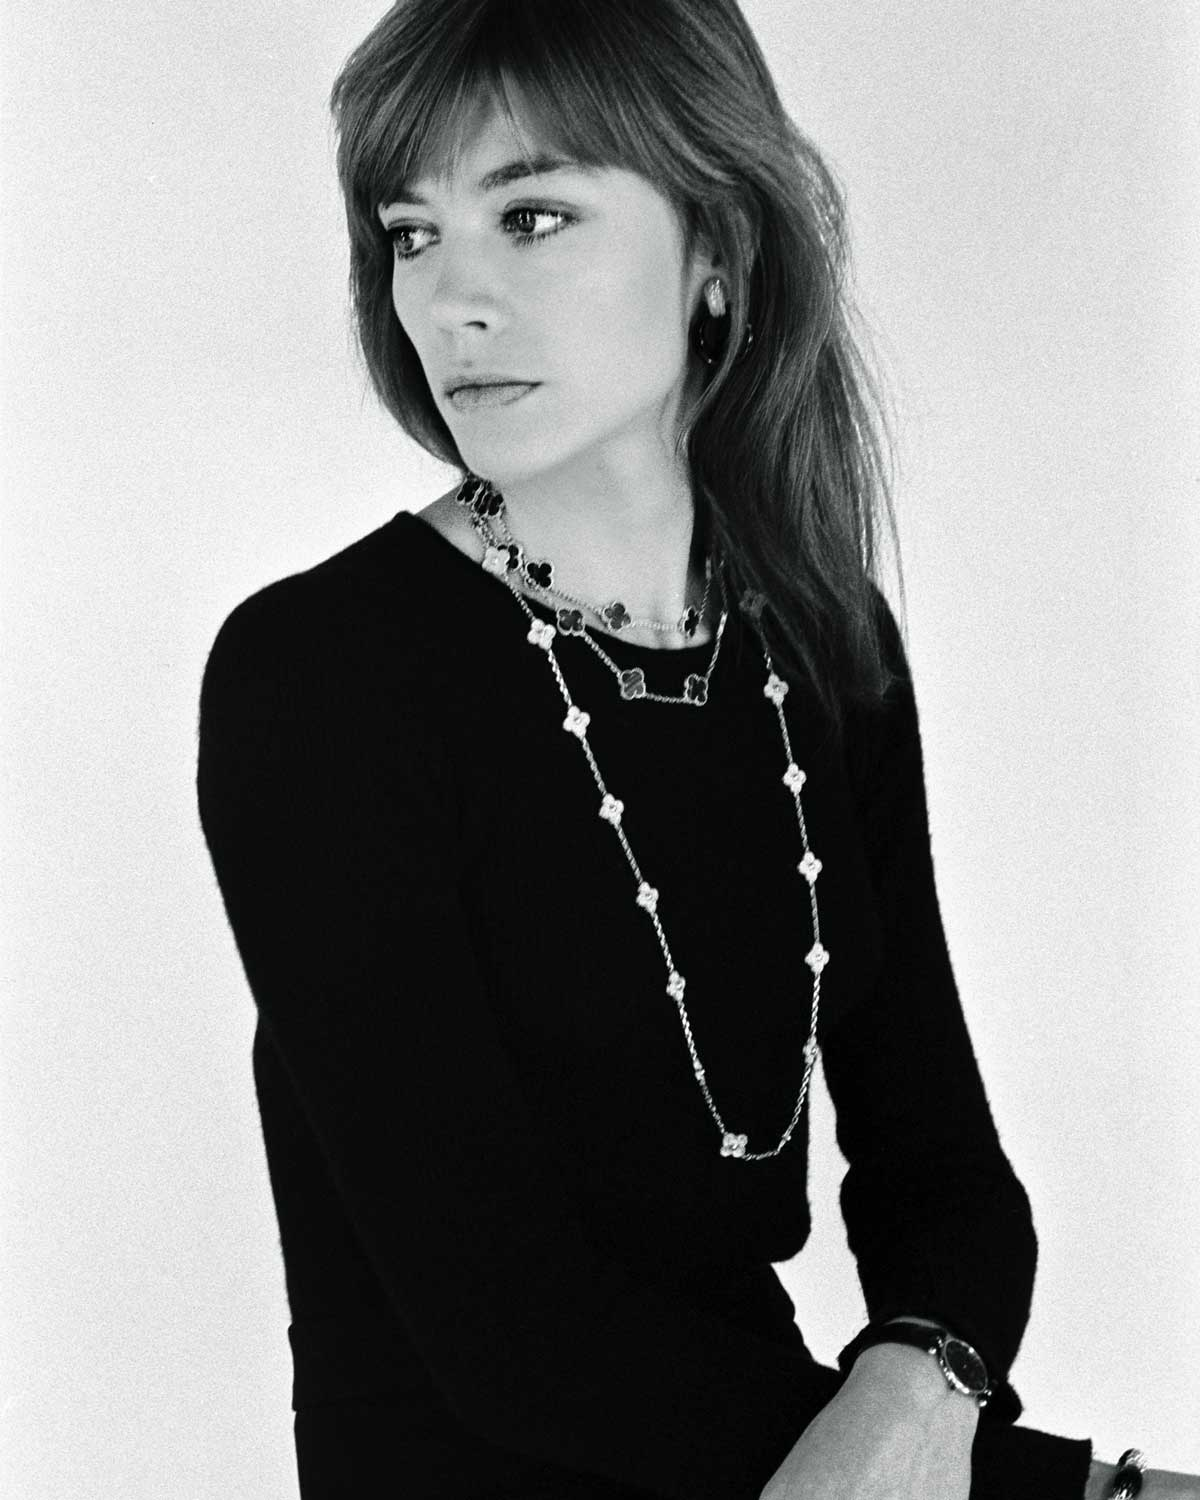 1973 French singer, Francoise Hardy at a photoshoot with an Alhambra necklace around her neck. Photo: Catherine Rotulo